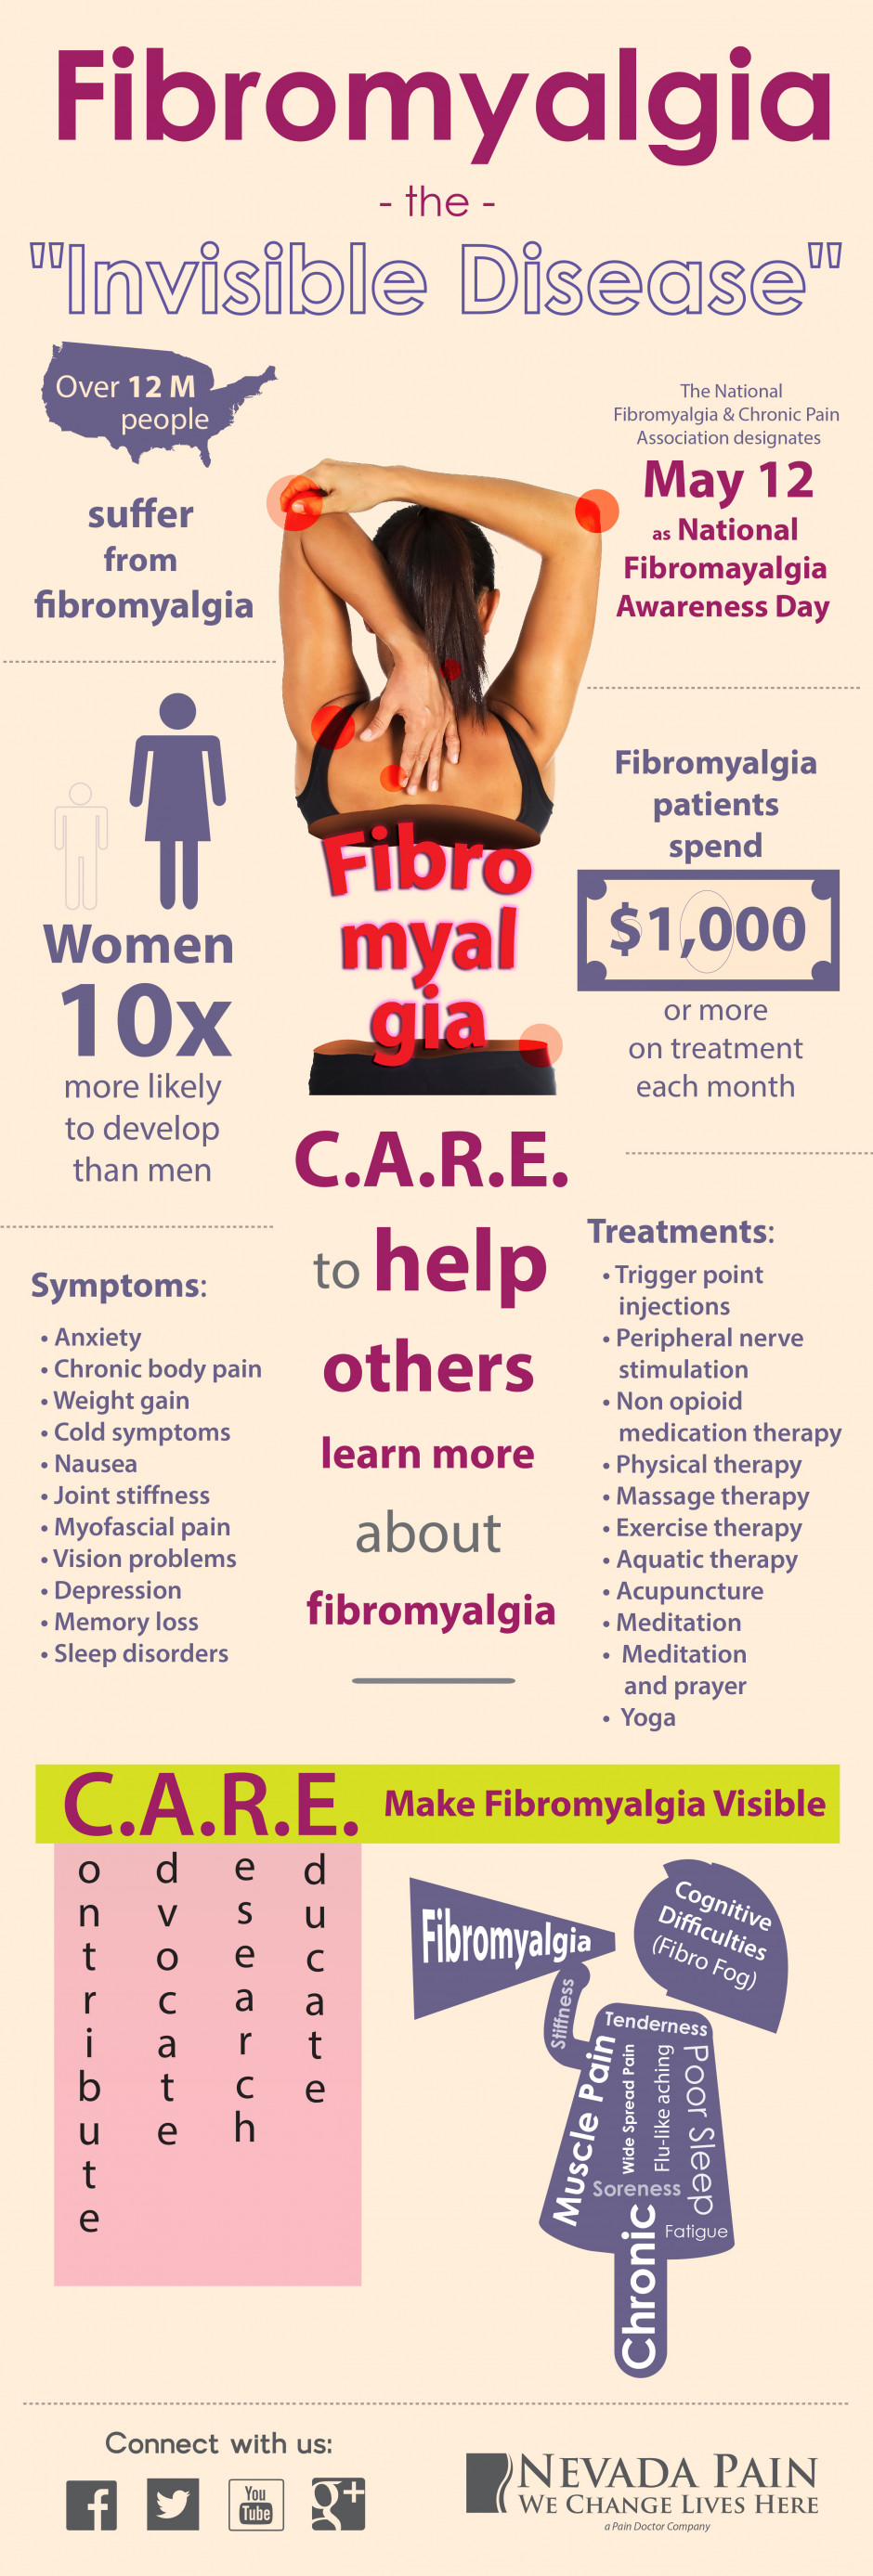 Fibromyalgia - The Invisible Disease